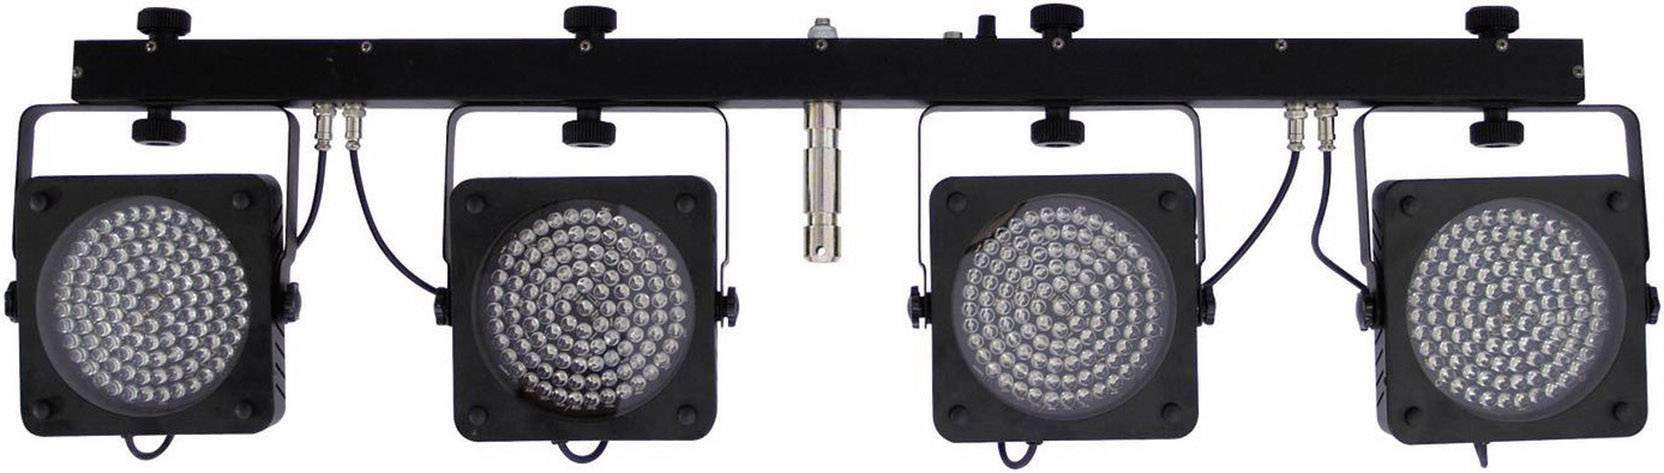 Sada svetiel LED Eurolite KLS-200 Multi-Color